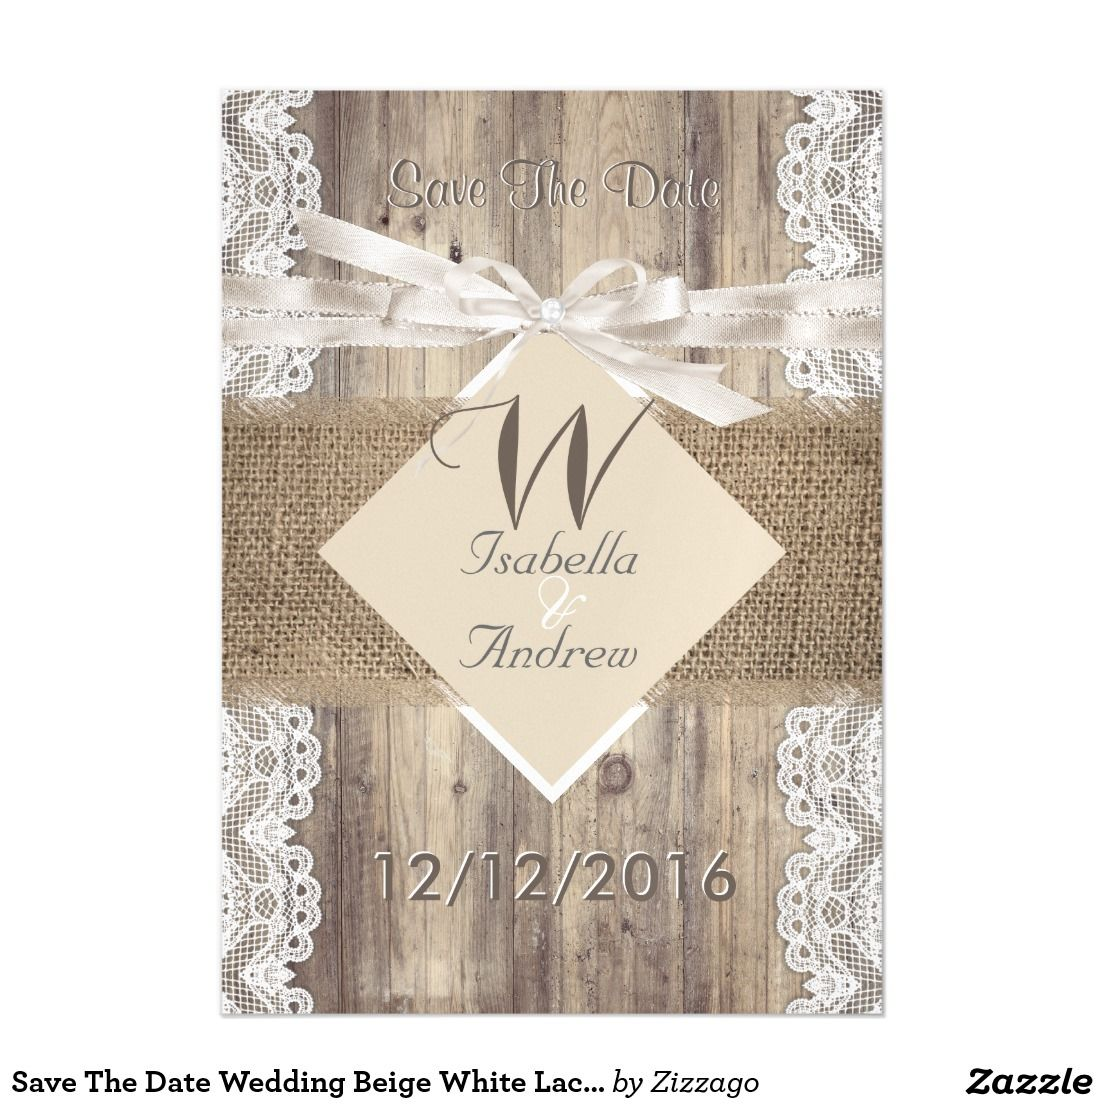 Save The Date Wedding Beige White Lace Wood Burlap Magnetic Card ...